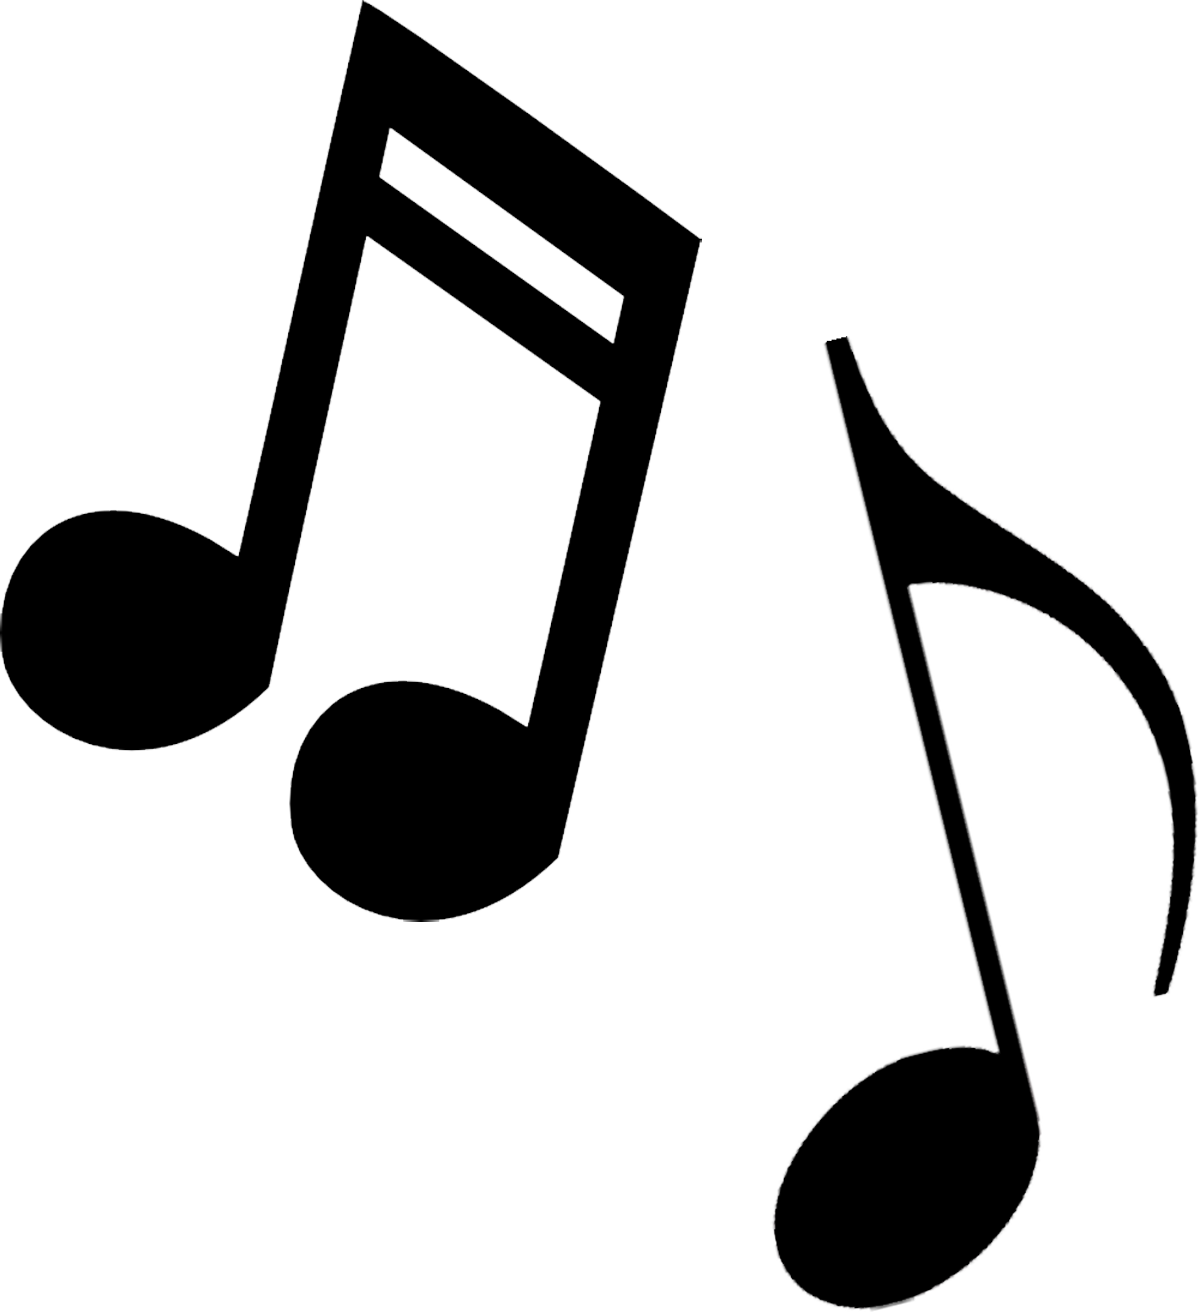 Musical clip art music notes free rf music notes clipart.